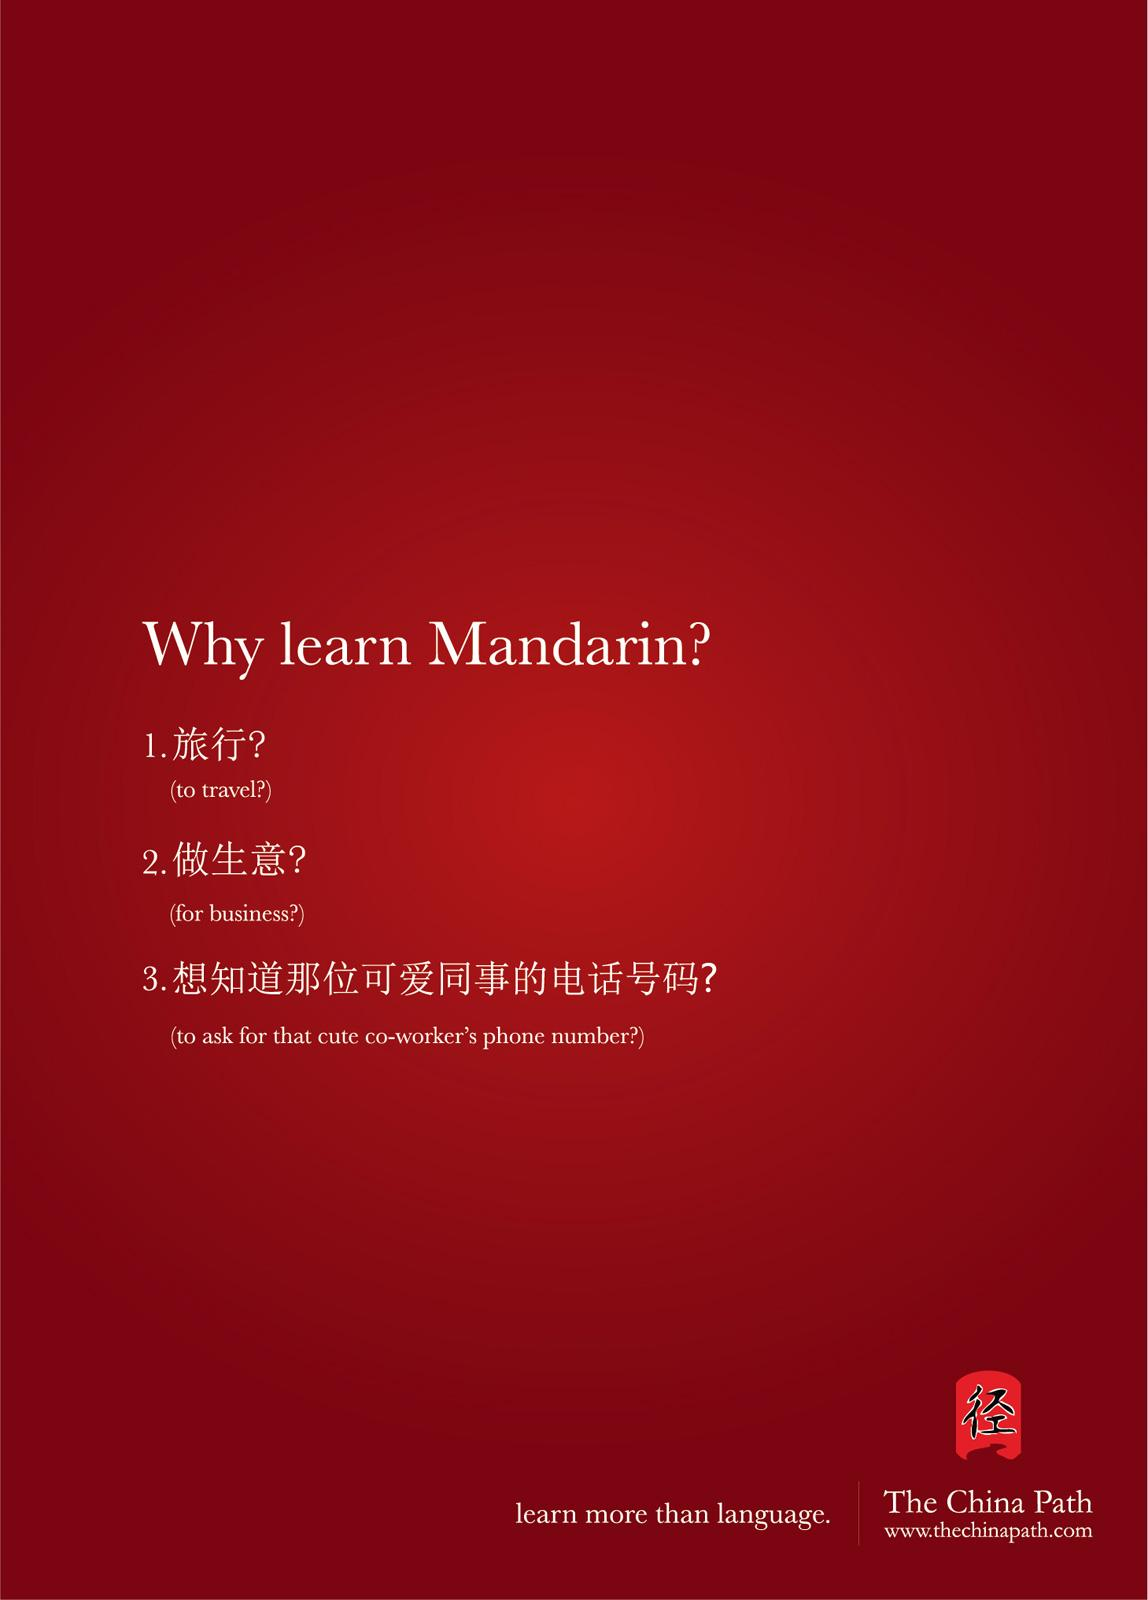 The China Path Print Ad -  Learn More Than Language, 3